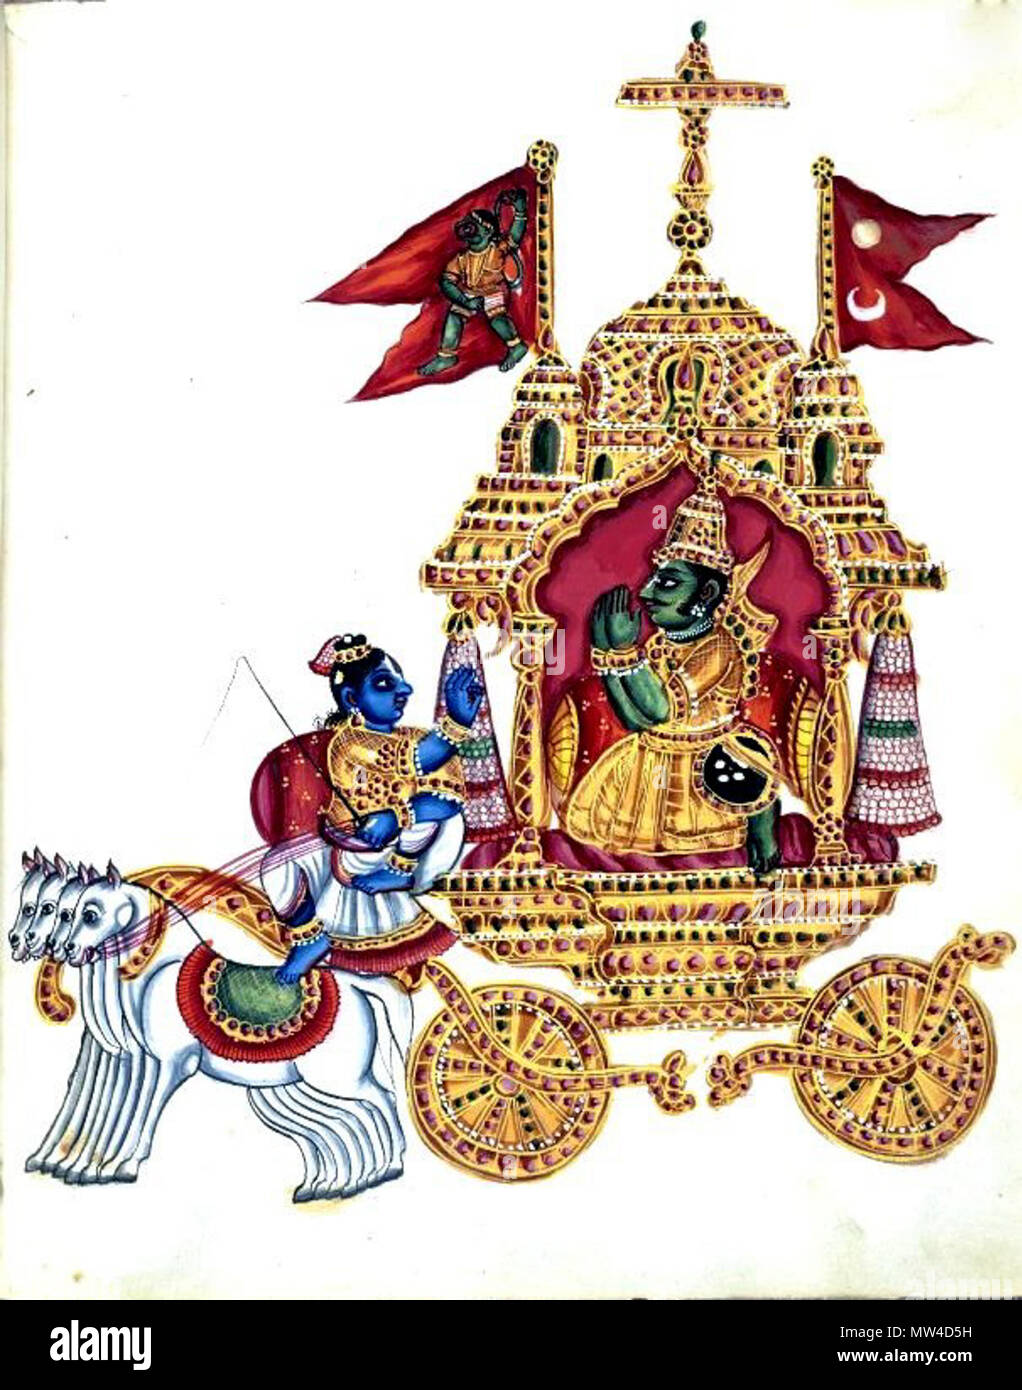 . English: 'Gouache painting on paper, part of an album of seventy paintings of Indian deities. Arjuna, dressed in courtly costume with a quiver slung over his shoulder and sword and buckler at his side, folds his hands in anjali mudra and kneels before his charioteer, Kṛṣṇa. The god sits holding the horses' bridles, with his right hand raised in the teaching gesture, jnana mudra. Their conveyance is drawn by four horses, and its roof is surmounted by a chhattra. At its sides are two flags – one with the standard bearing Arjuna's emblem, the Hanuman flag and the Flag of Nepal . circa 1830. Unk - Stock Image